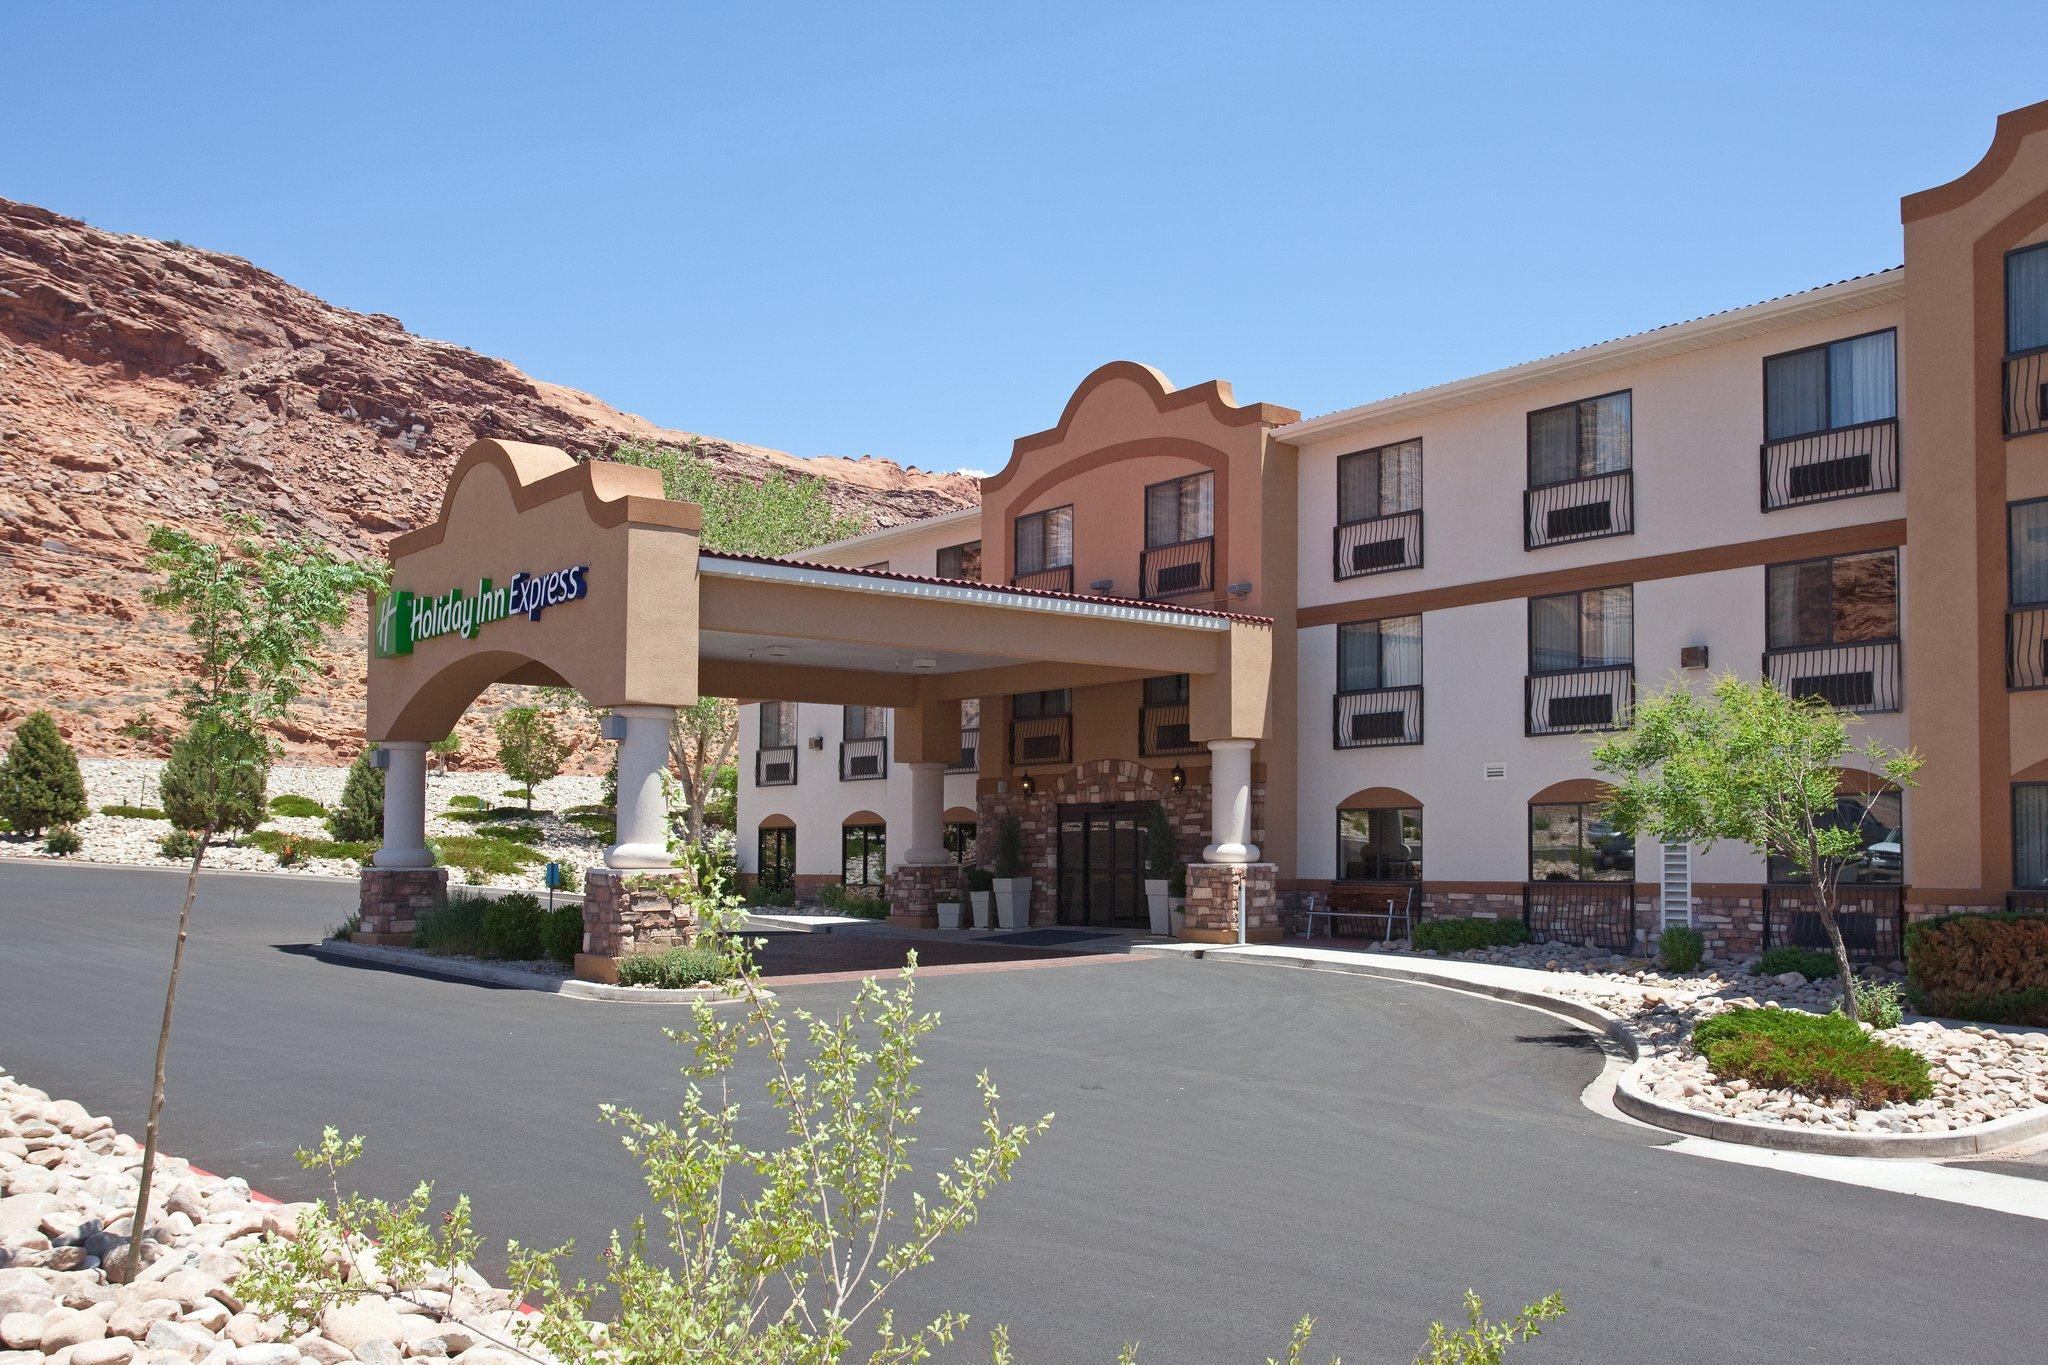 Holiday Inn Express Hotel And Suites Moab